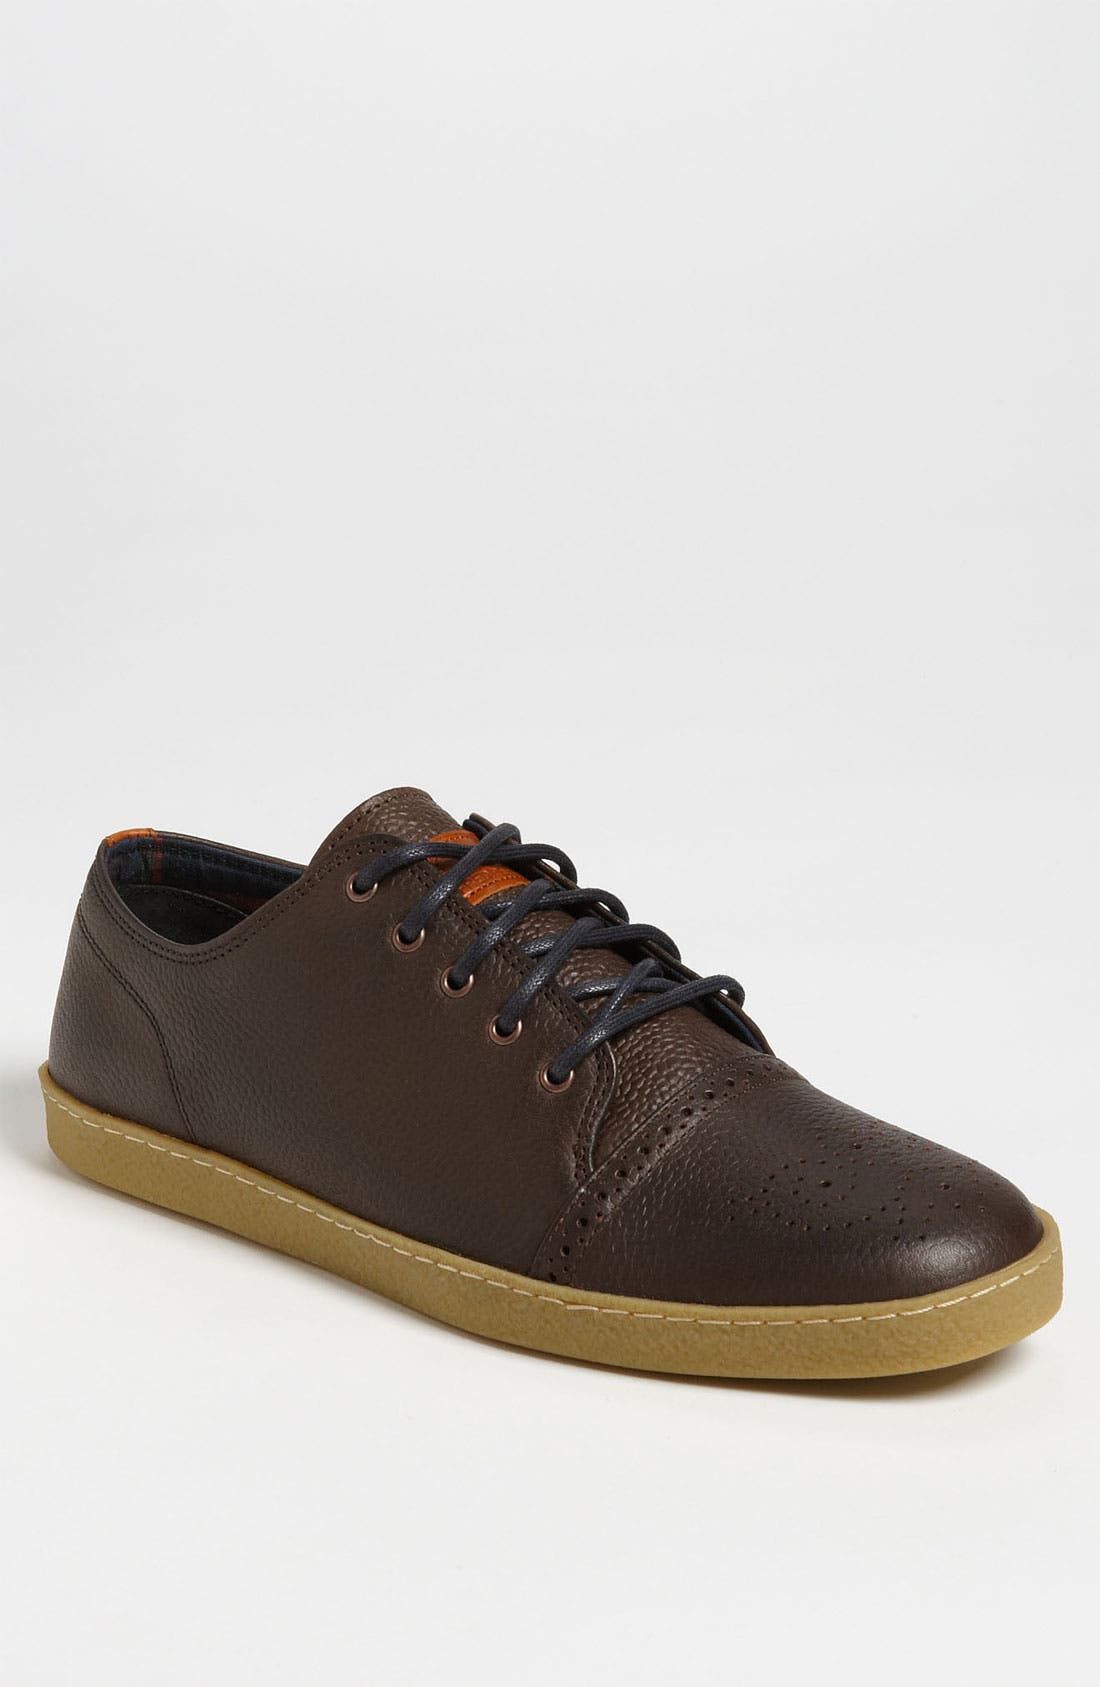 Main Image - Fred Perry 'Deighton' Leather Sneaker